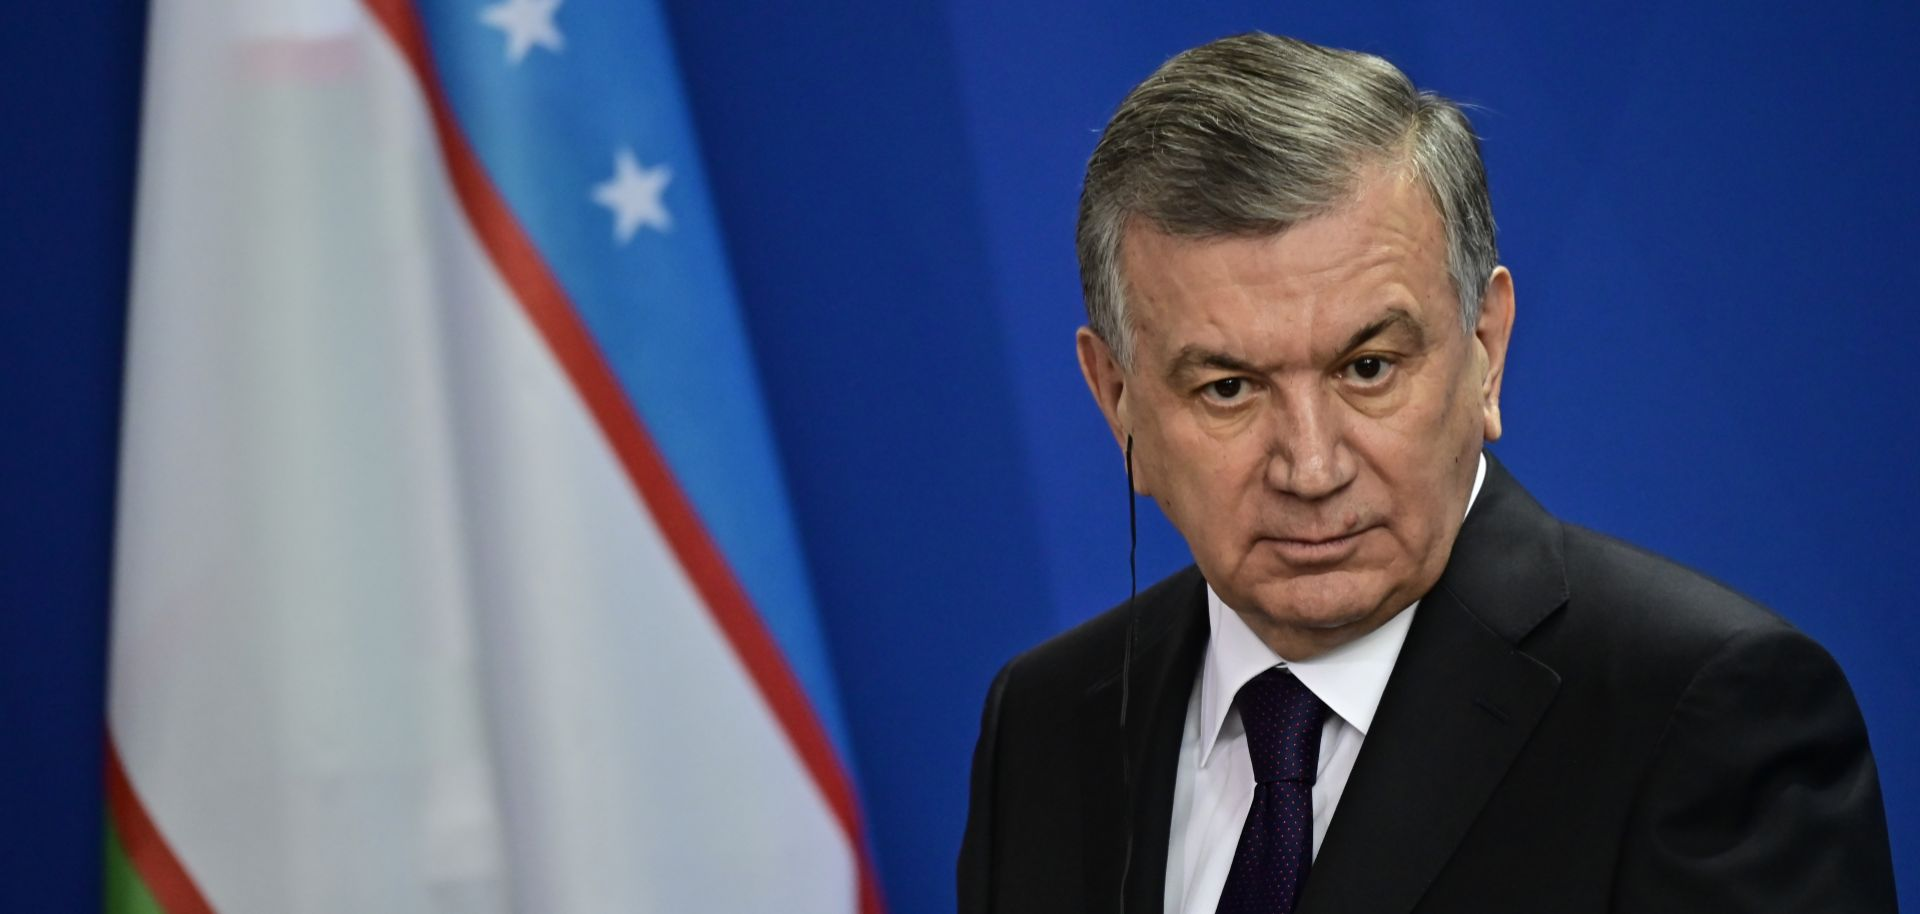 Uzbek President Shavkat Mirziyoyev listens during a joint press conference with German Chancellor Angela Merkel prior to a meeting on Jan. 21, 2019, in Berlin.